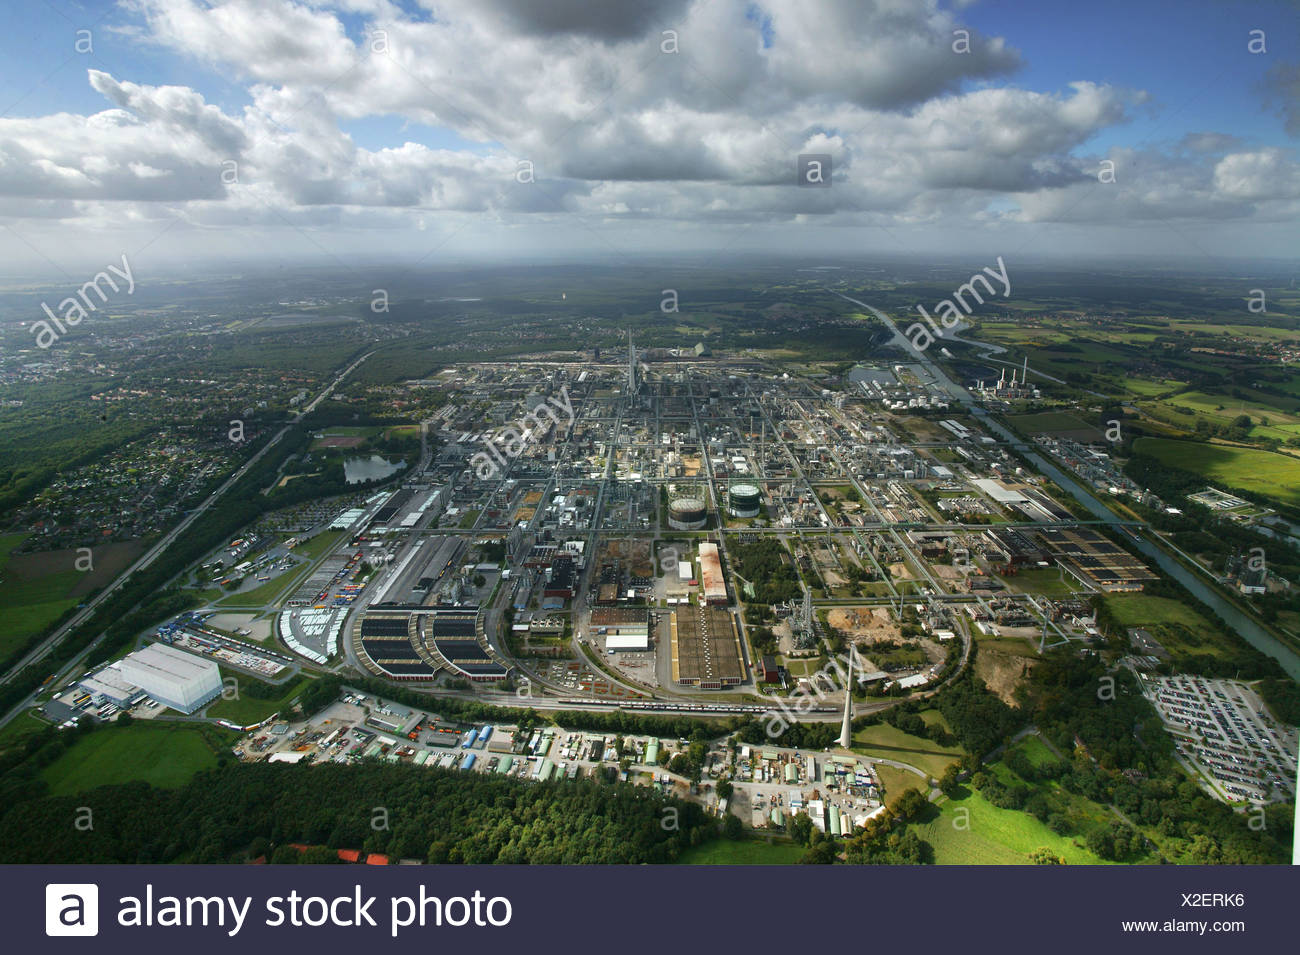 Aerial photograph, Degussa, EVONIK, chemical works, Chemiepark Marl, power stations, clouds, Ruhr Area, North Rhine-Westphalia, - Stock Image